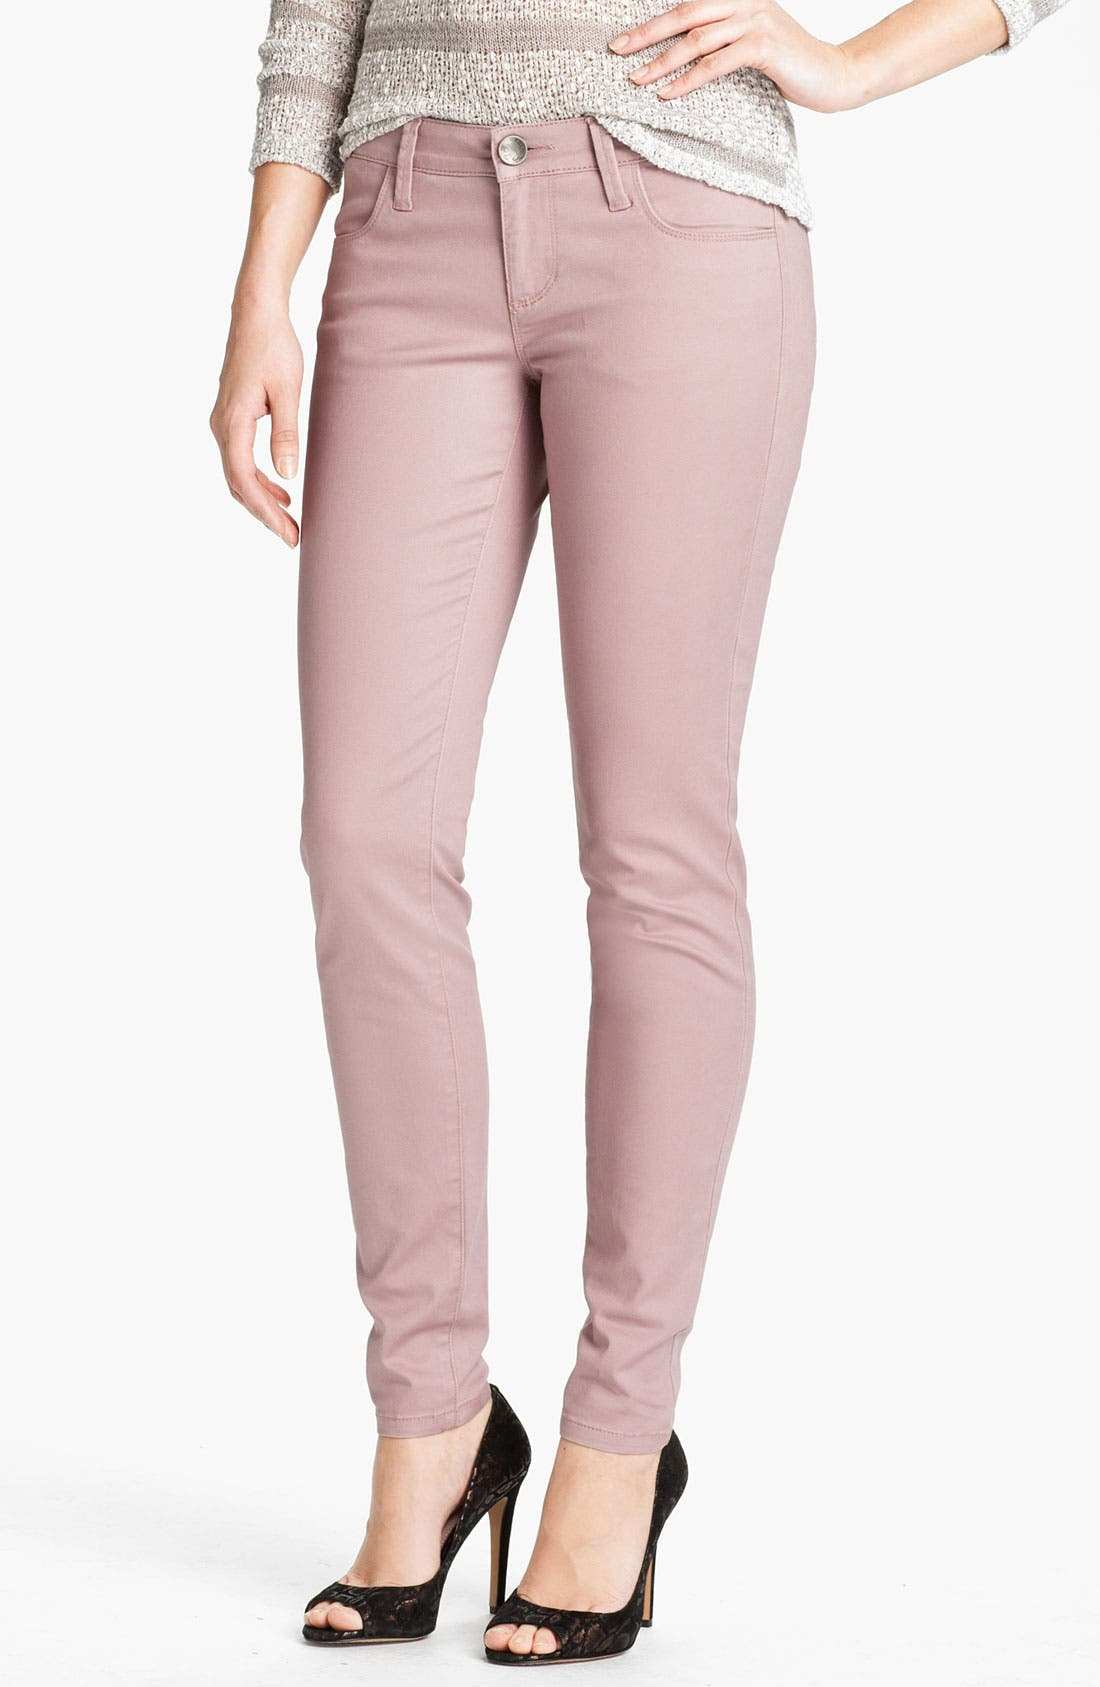 Main Image - KUT from the Kloth 'Jennifer' Skinny Stretch Jeans (Rose) (Online Exclusive)